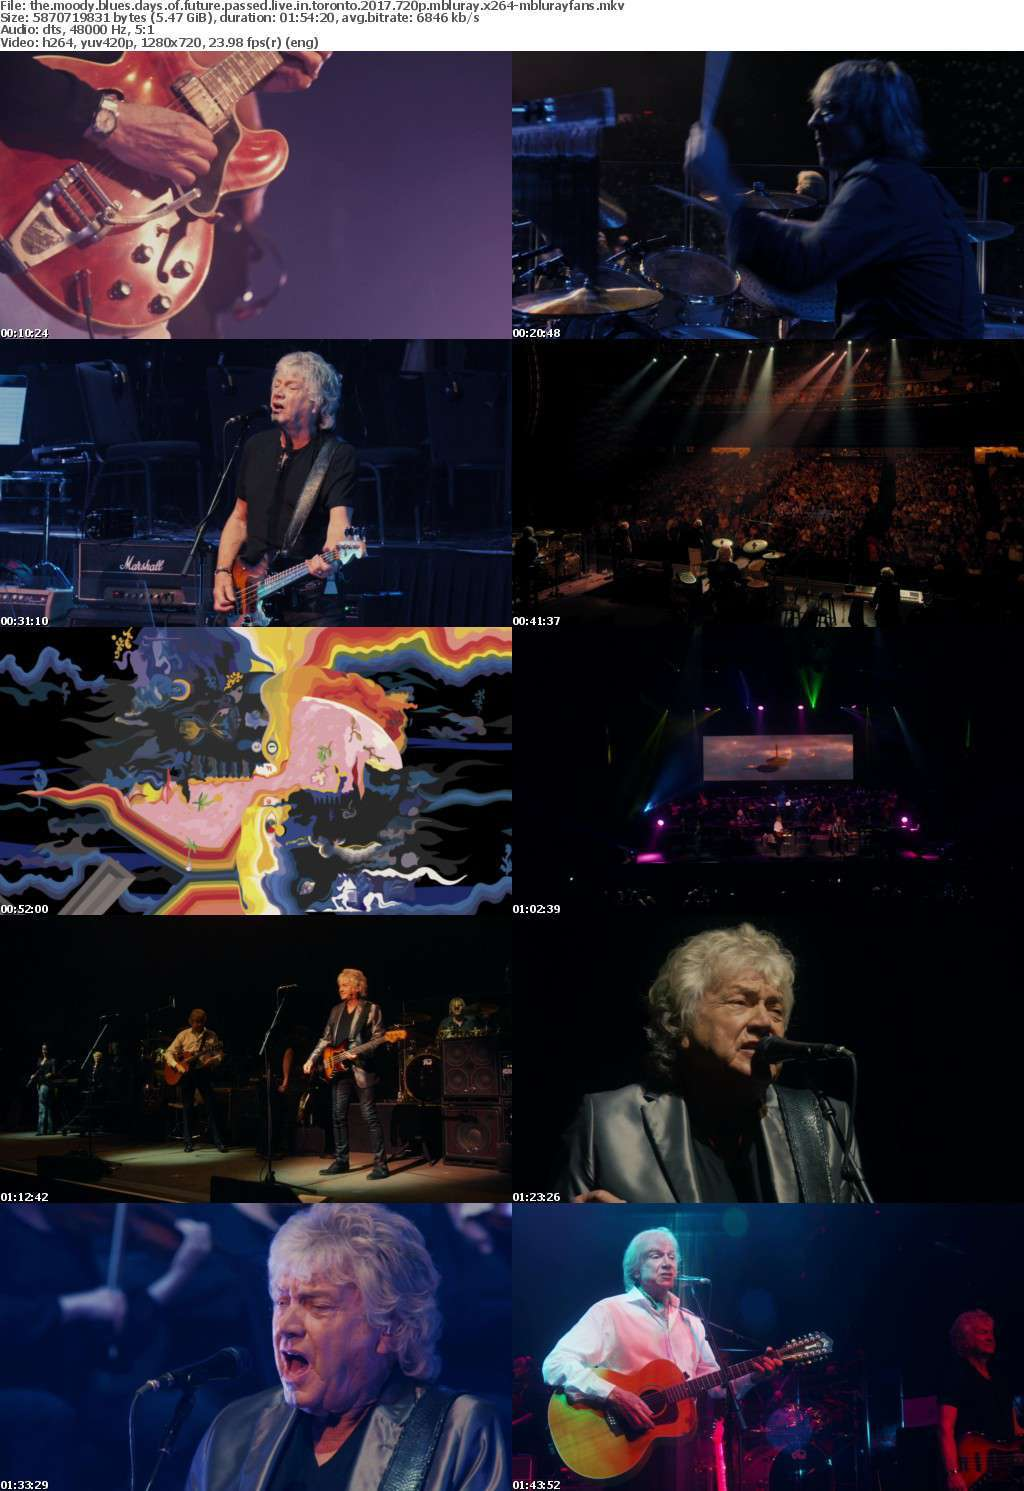 The Moody Blues Days Of Future Passed Live in Toronto 2017 720p MBLURAY x264-MBLURAYFANS